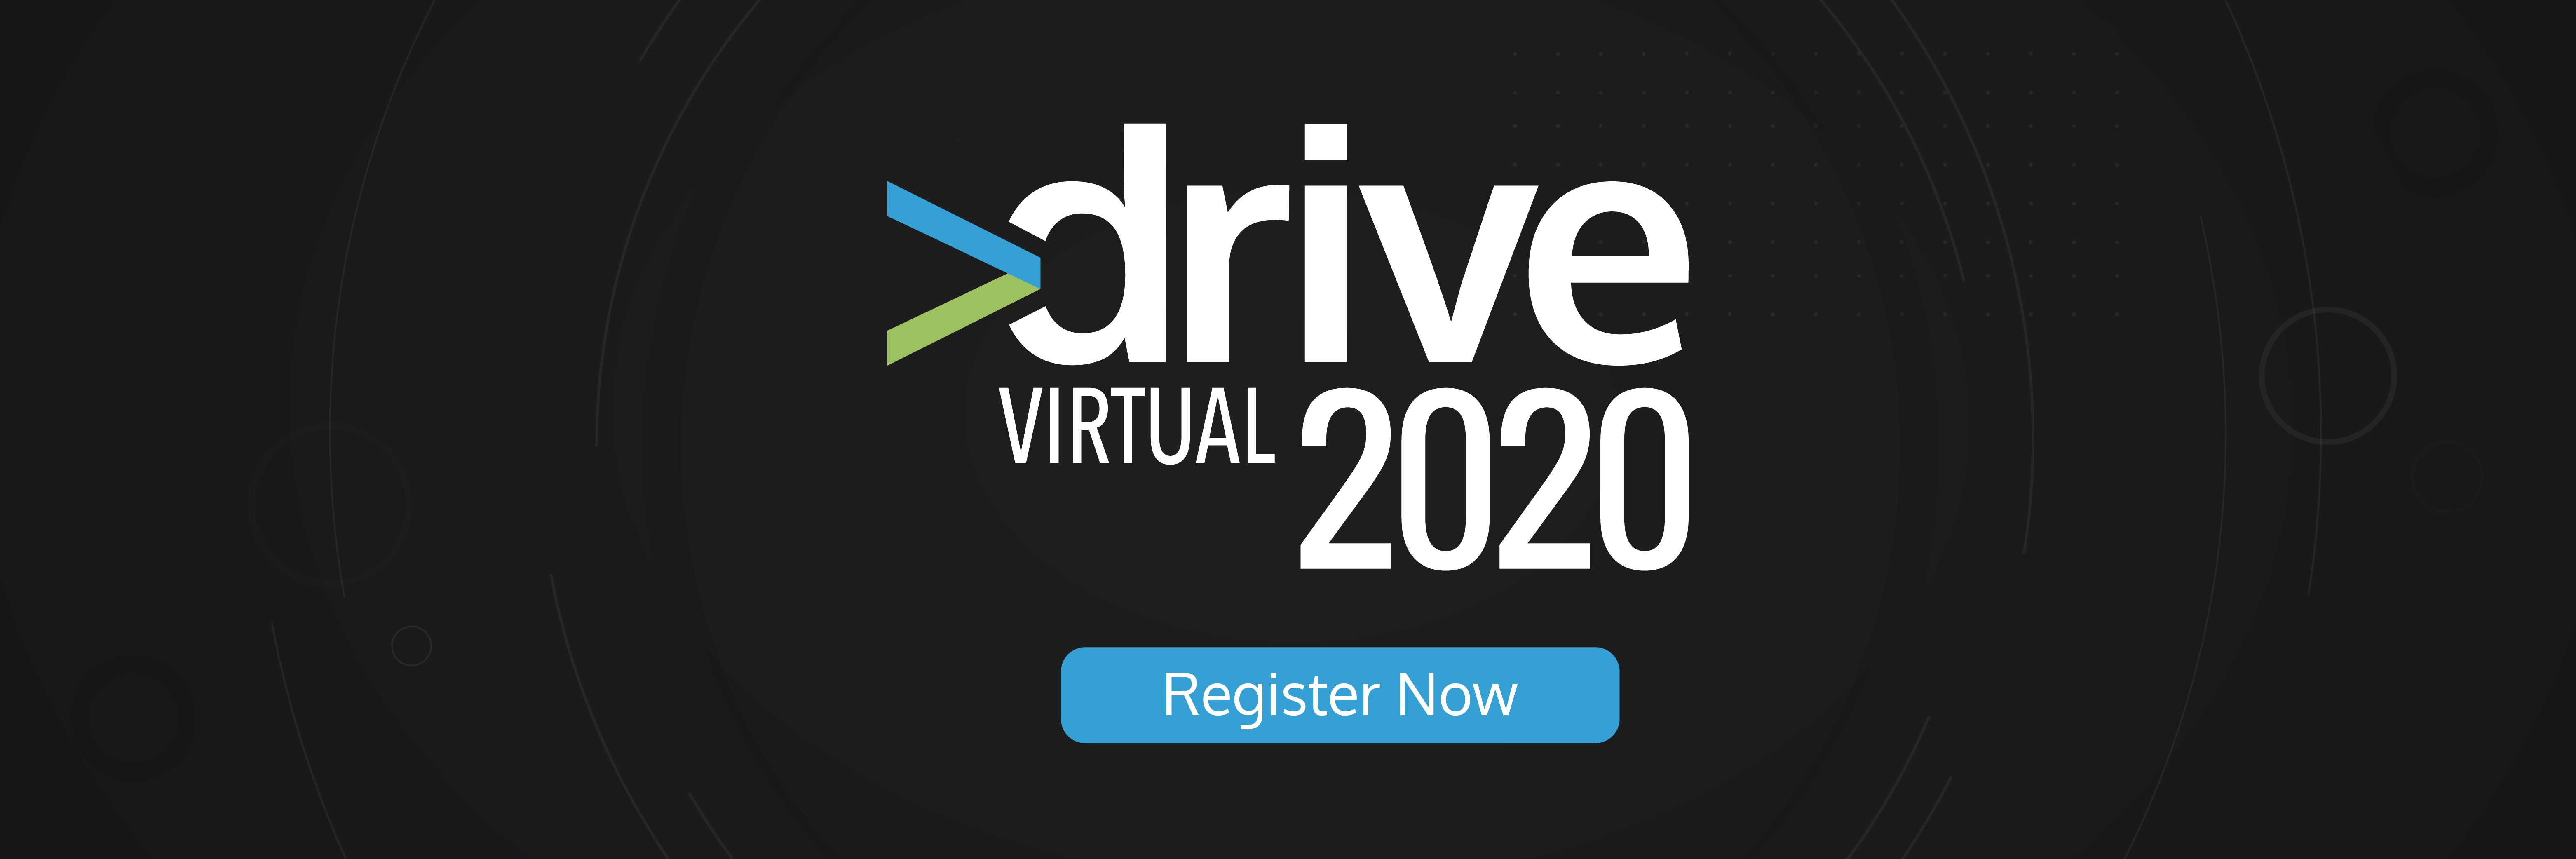 Register for AdvisorEngine >drive2020